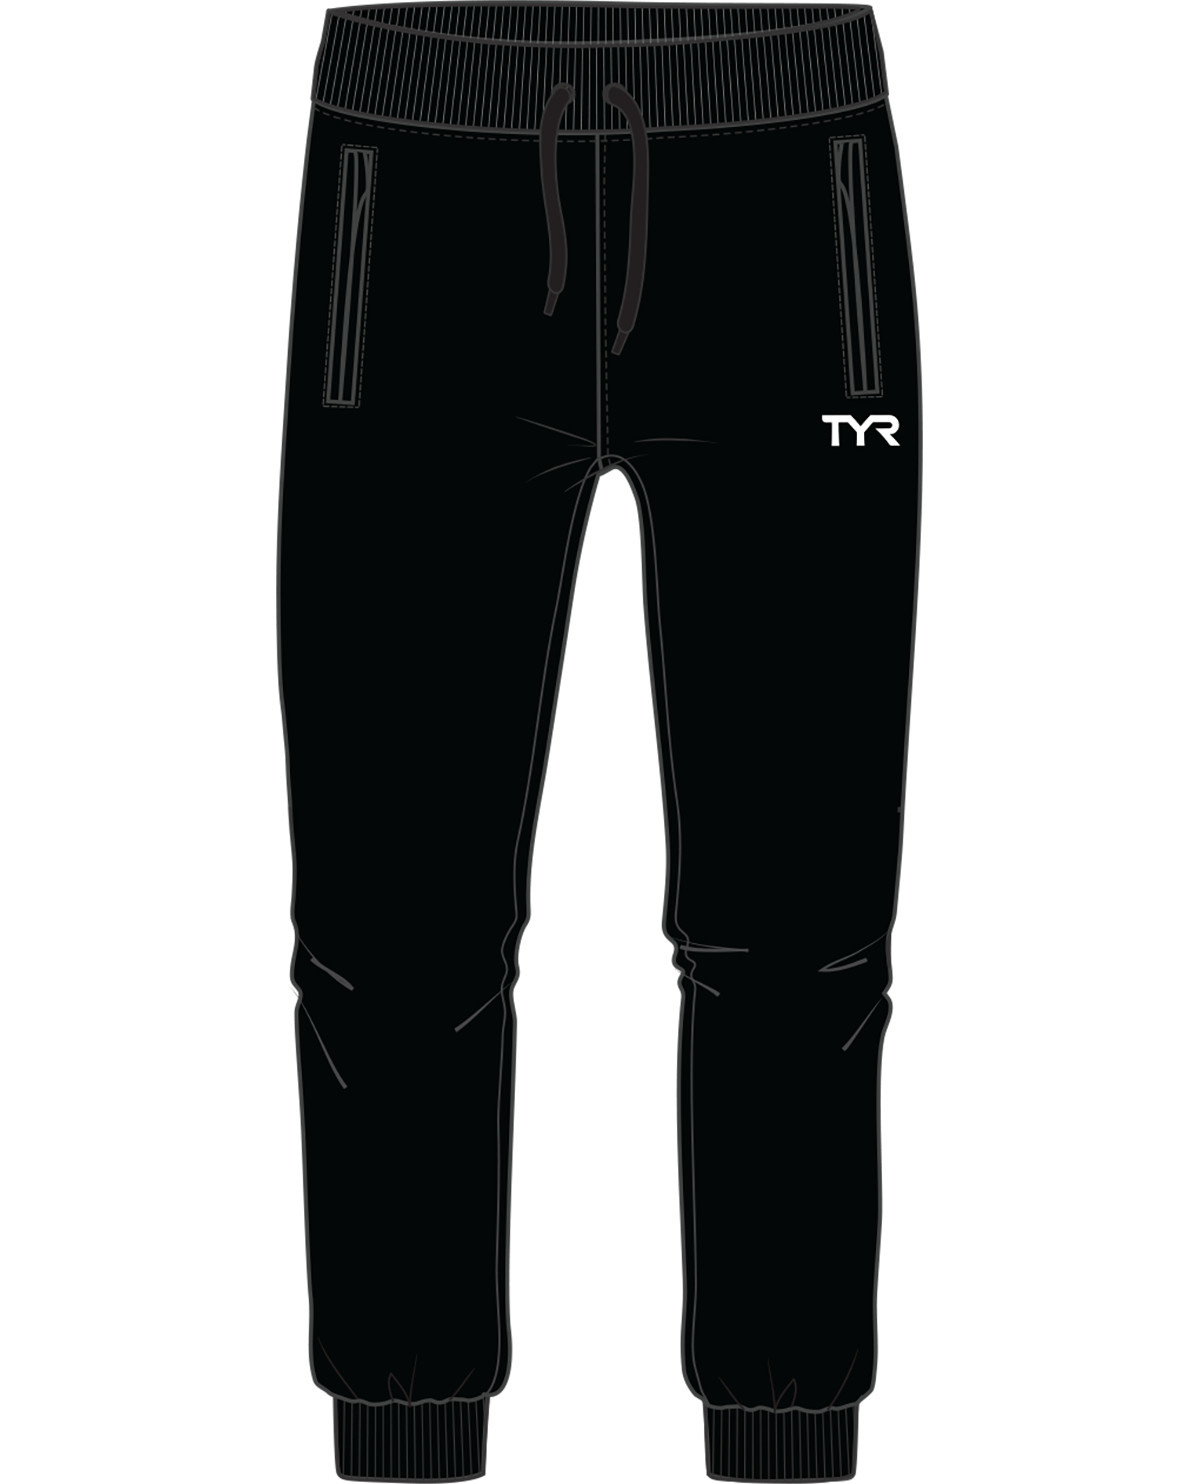 Judson Warm Up Pant